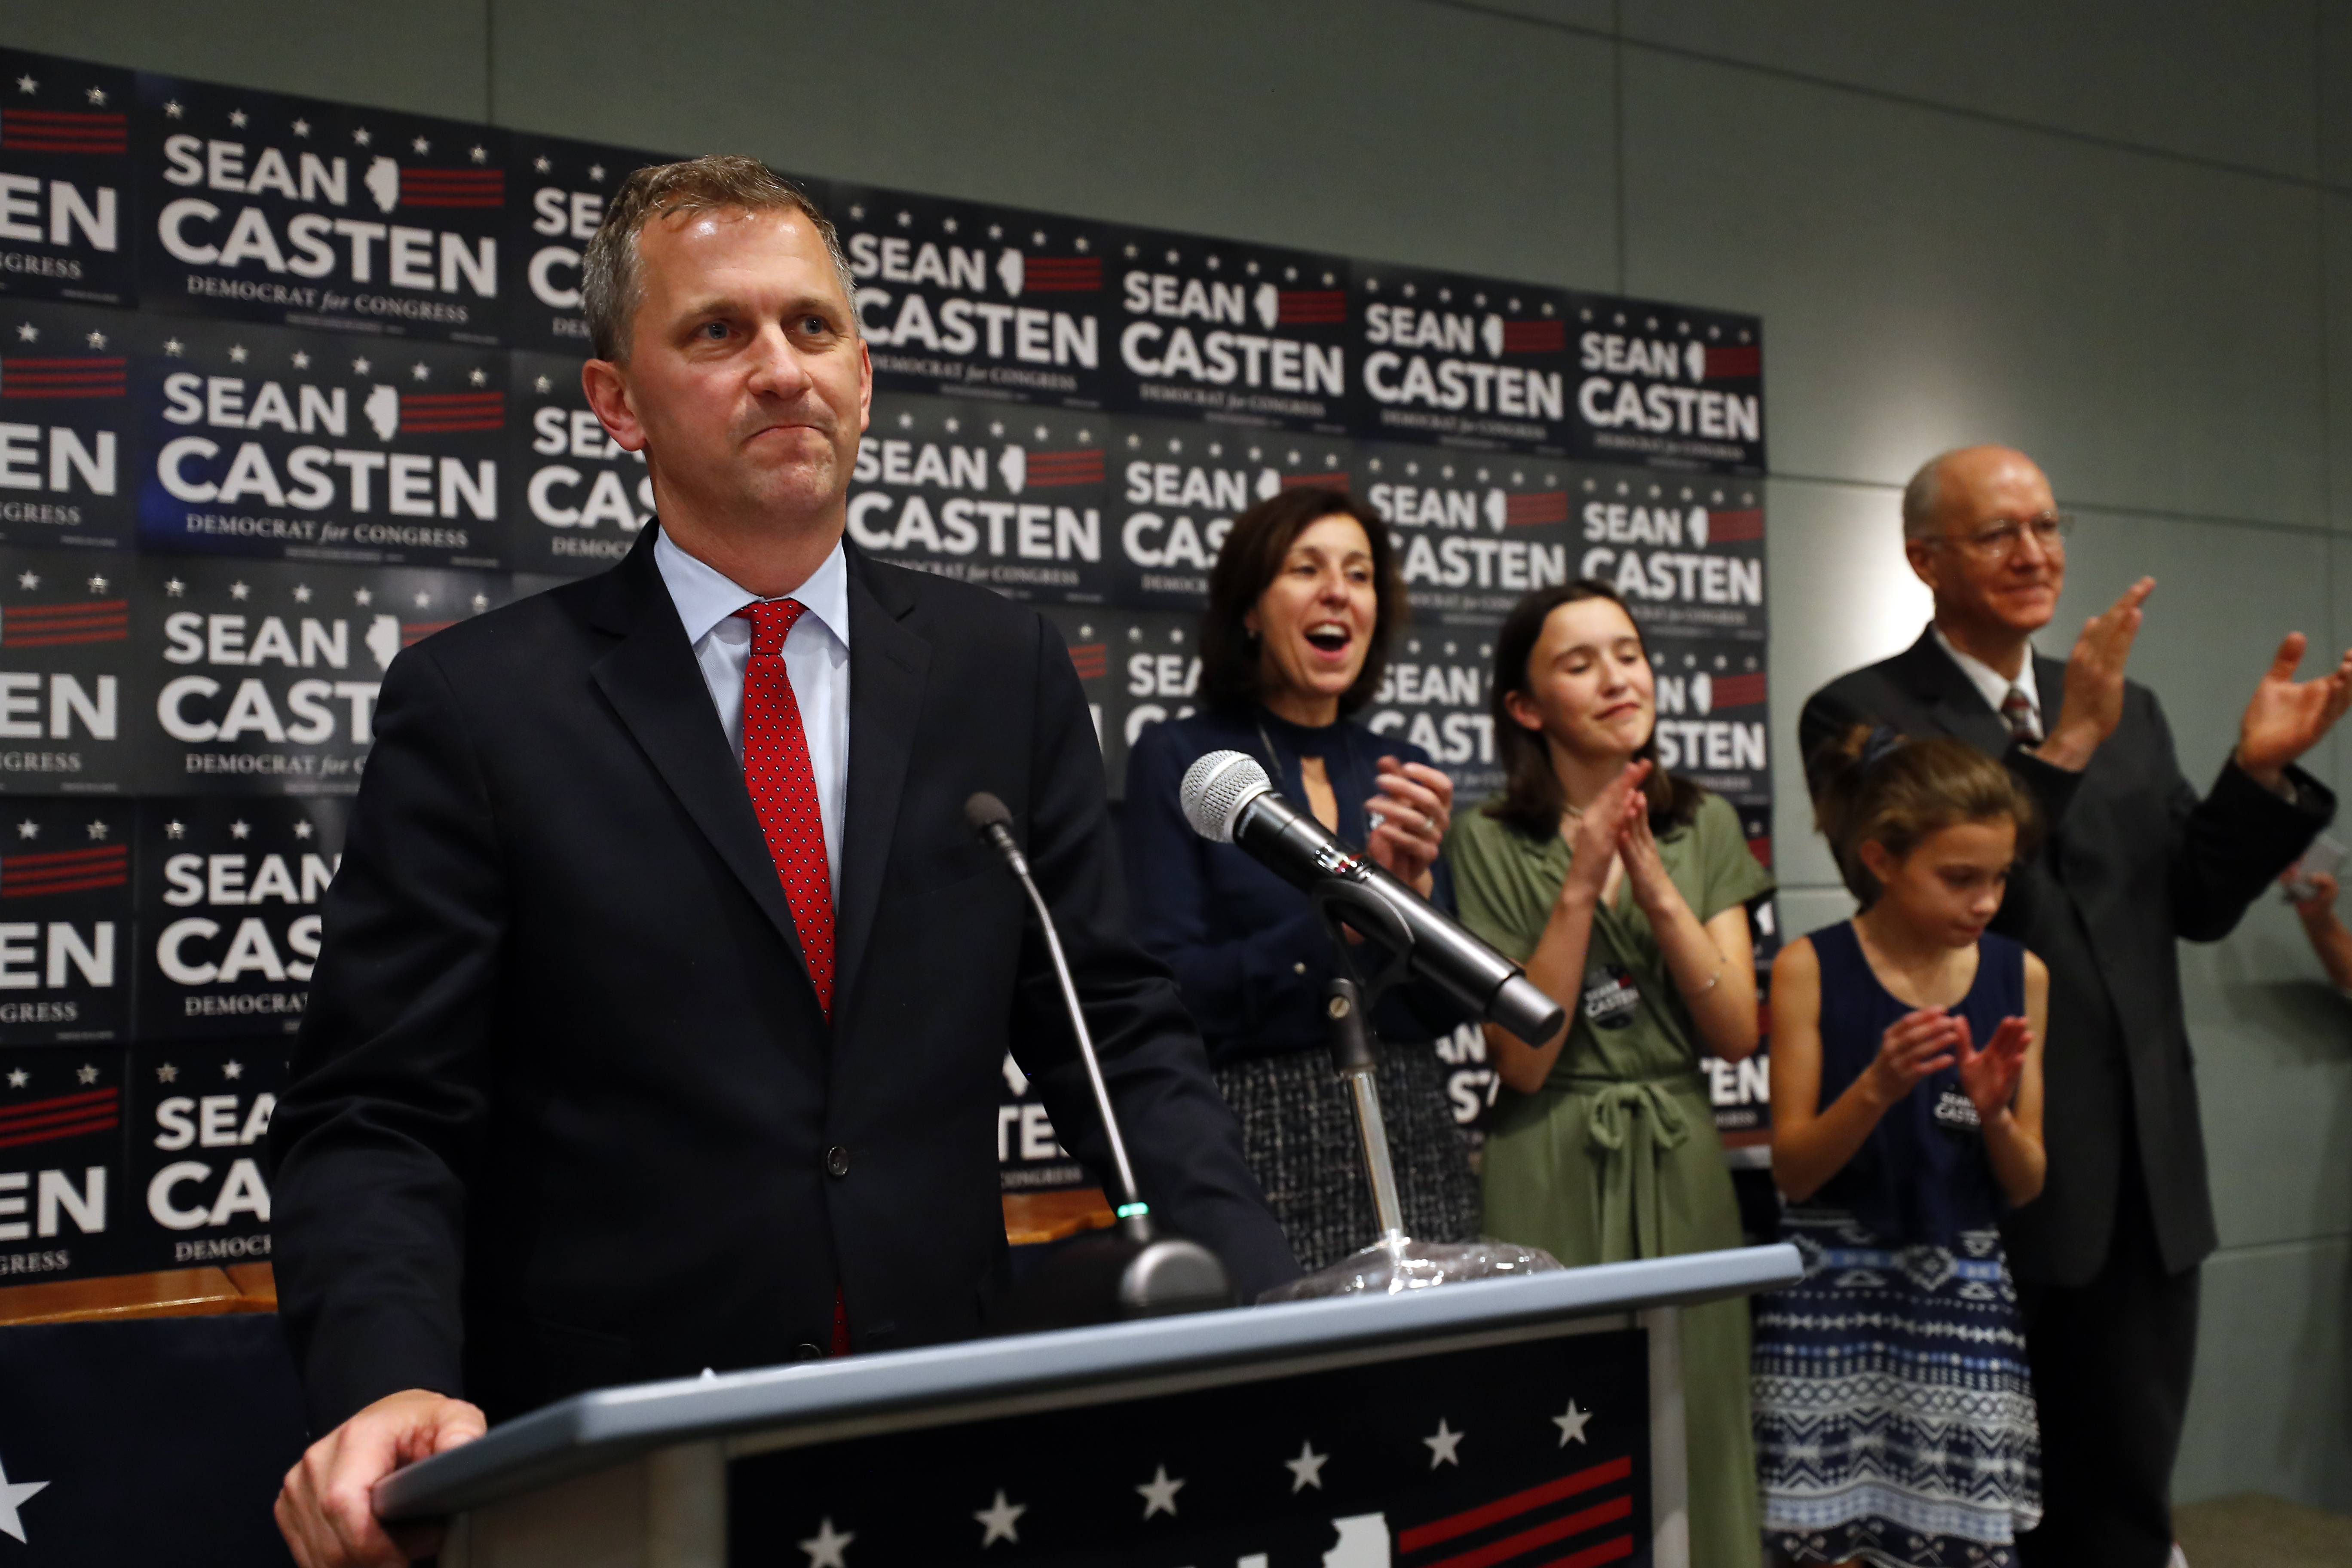 Downers Grove Democrat Sean Casten celebrates on stage with his family Tuesday during an election night party in Warrenville. There, he claimed victory over 6th District incumbent Republican Rep. Peter Roskam of Wheaton.